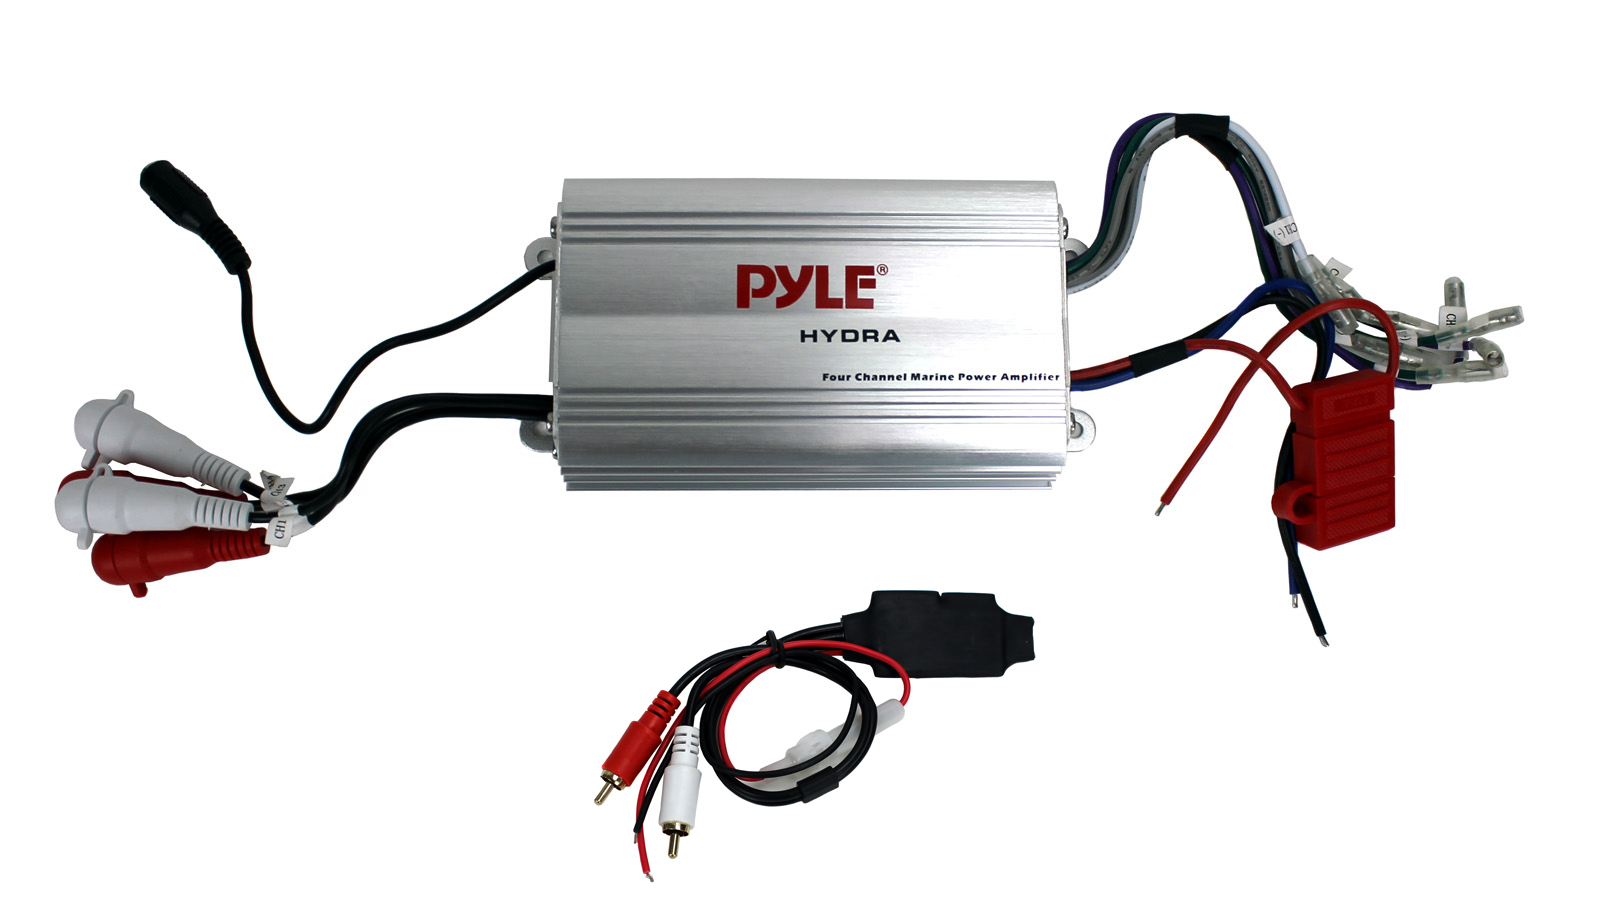 medium resolution of pyle plmrmp3a 4 channel marine waterproof mp3 ipod amplifier pyle plmrmp3a wiring diagram